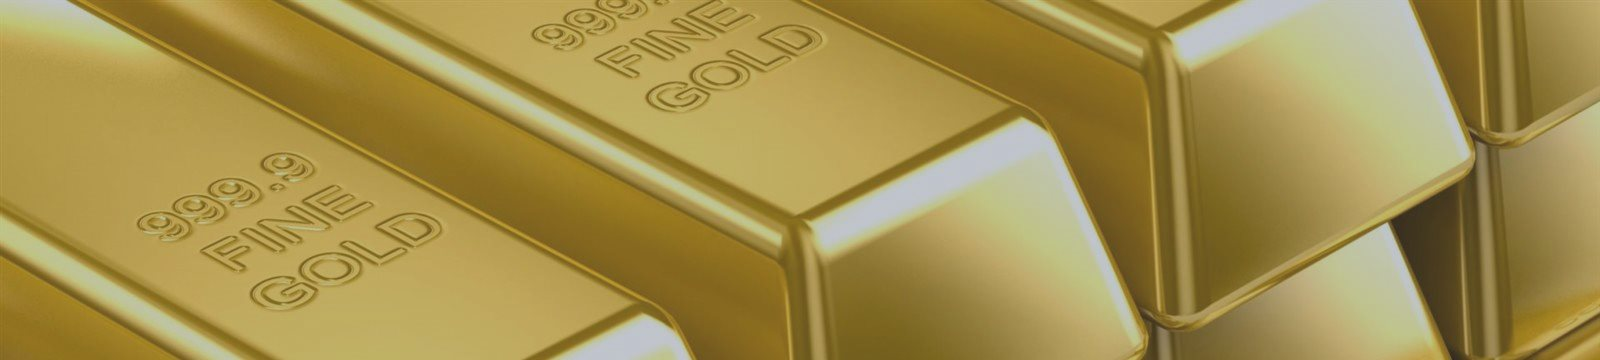 Gold Prices: Too Hot to Handle, Too Shiny to Ignore